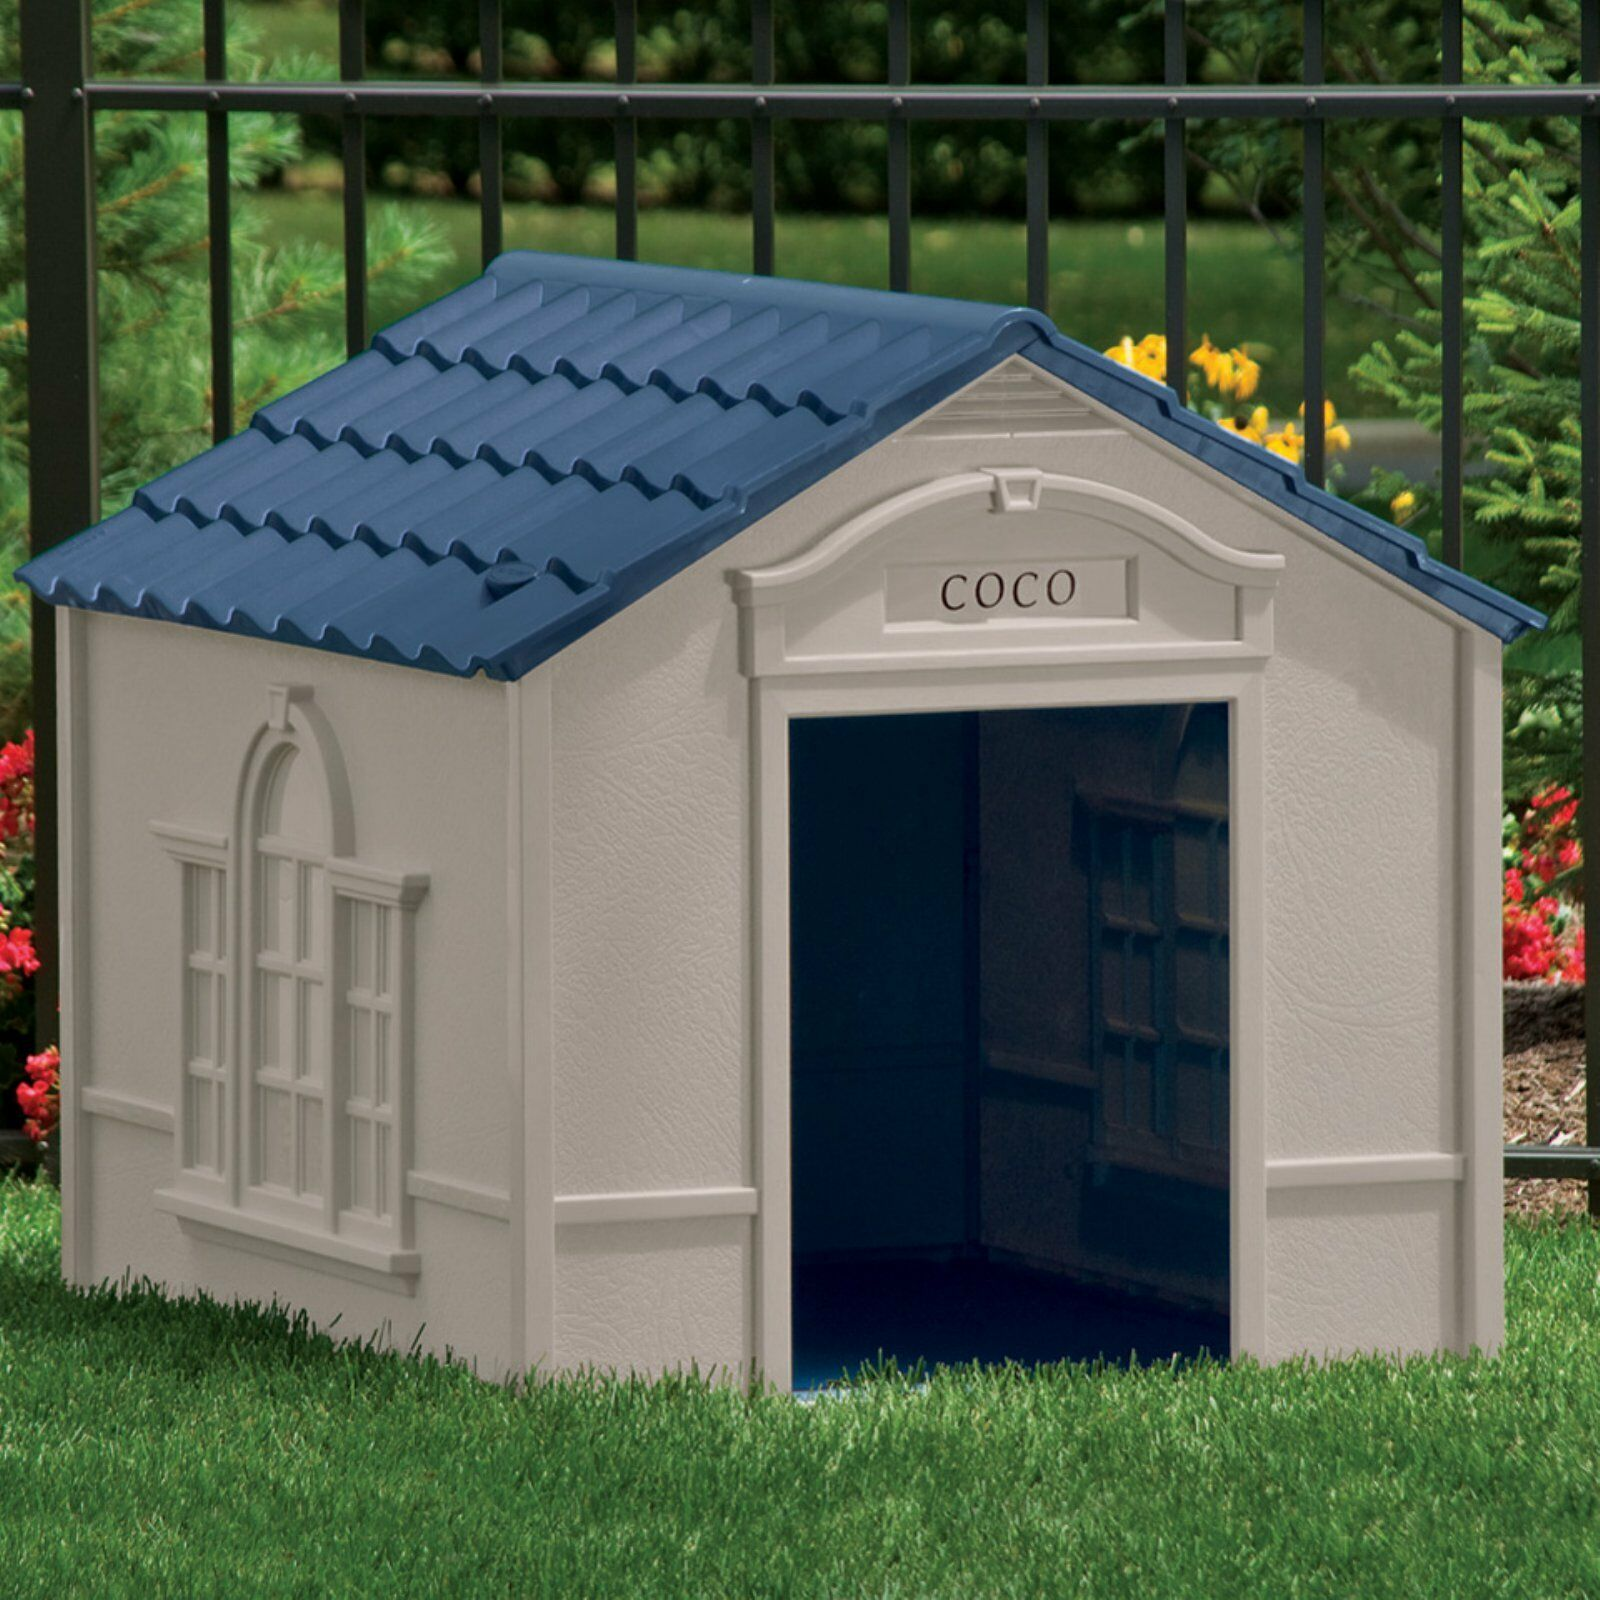 Deluxe Dog House Large Pet Outdoor Resin Durable Allweather Weatherproof Shelter